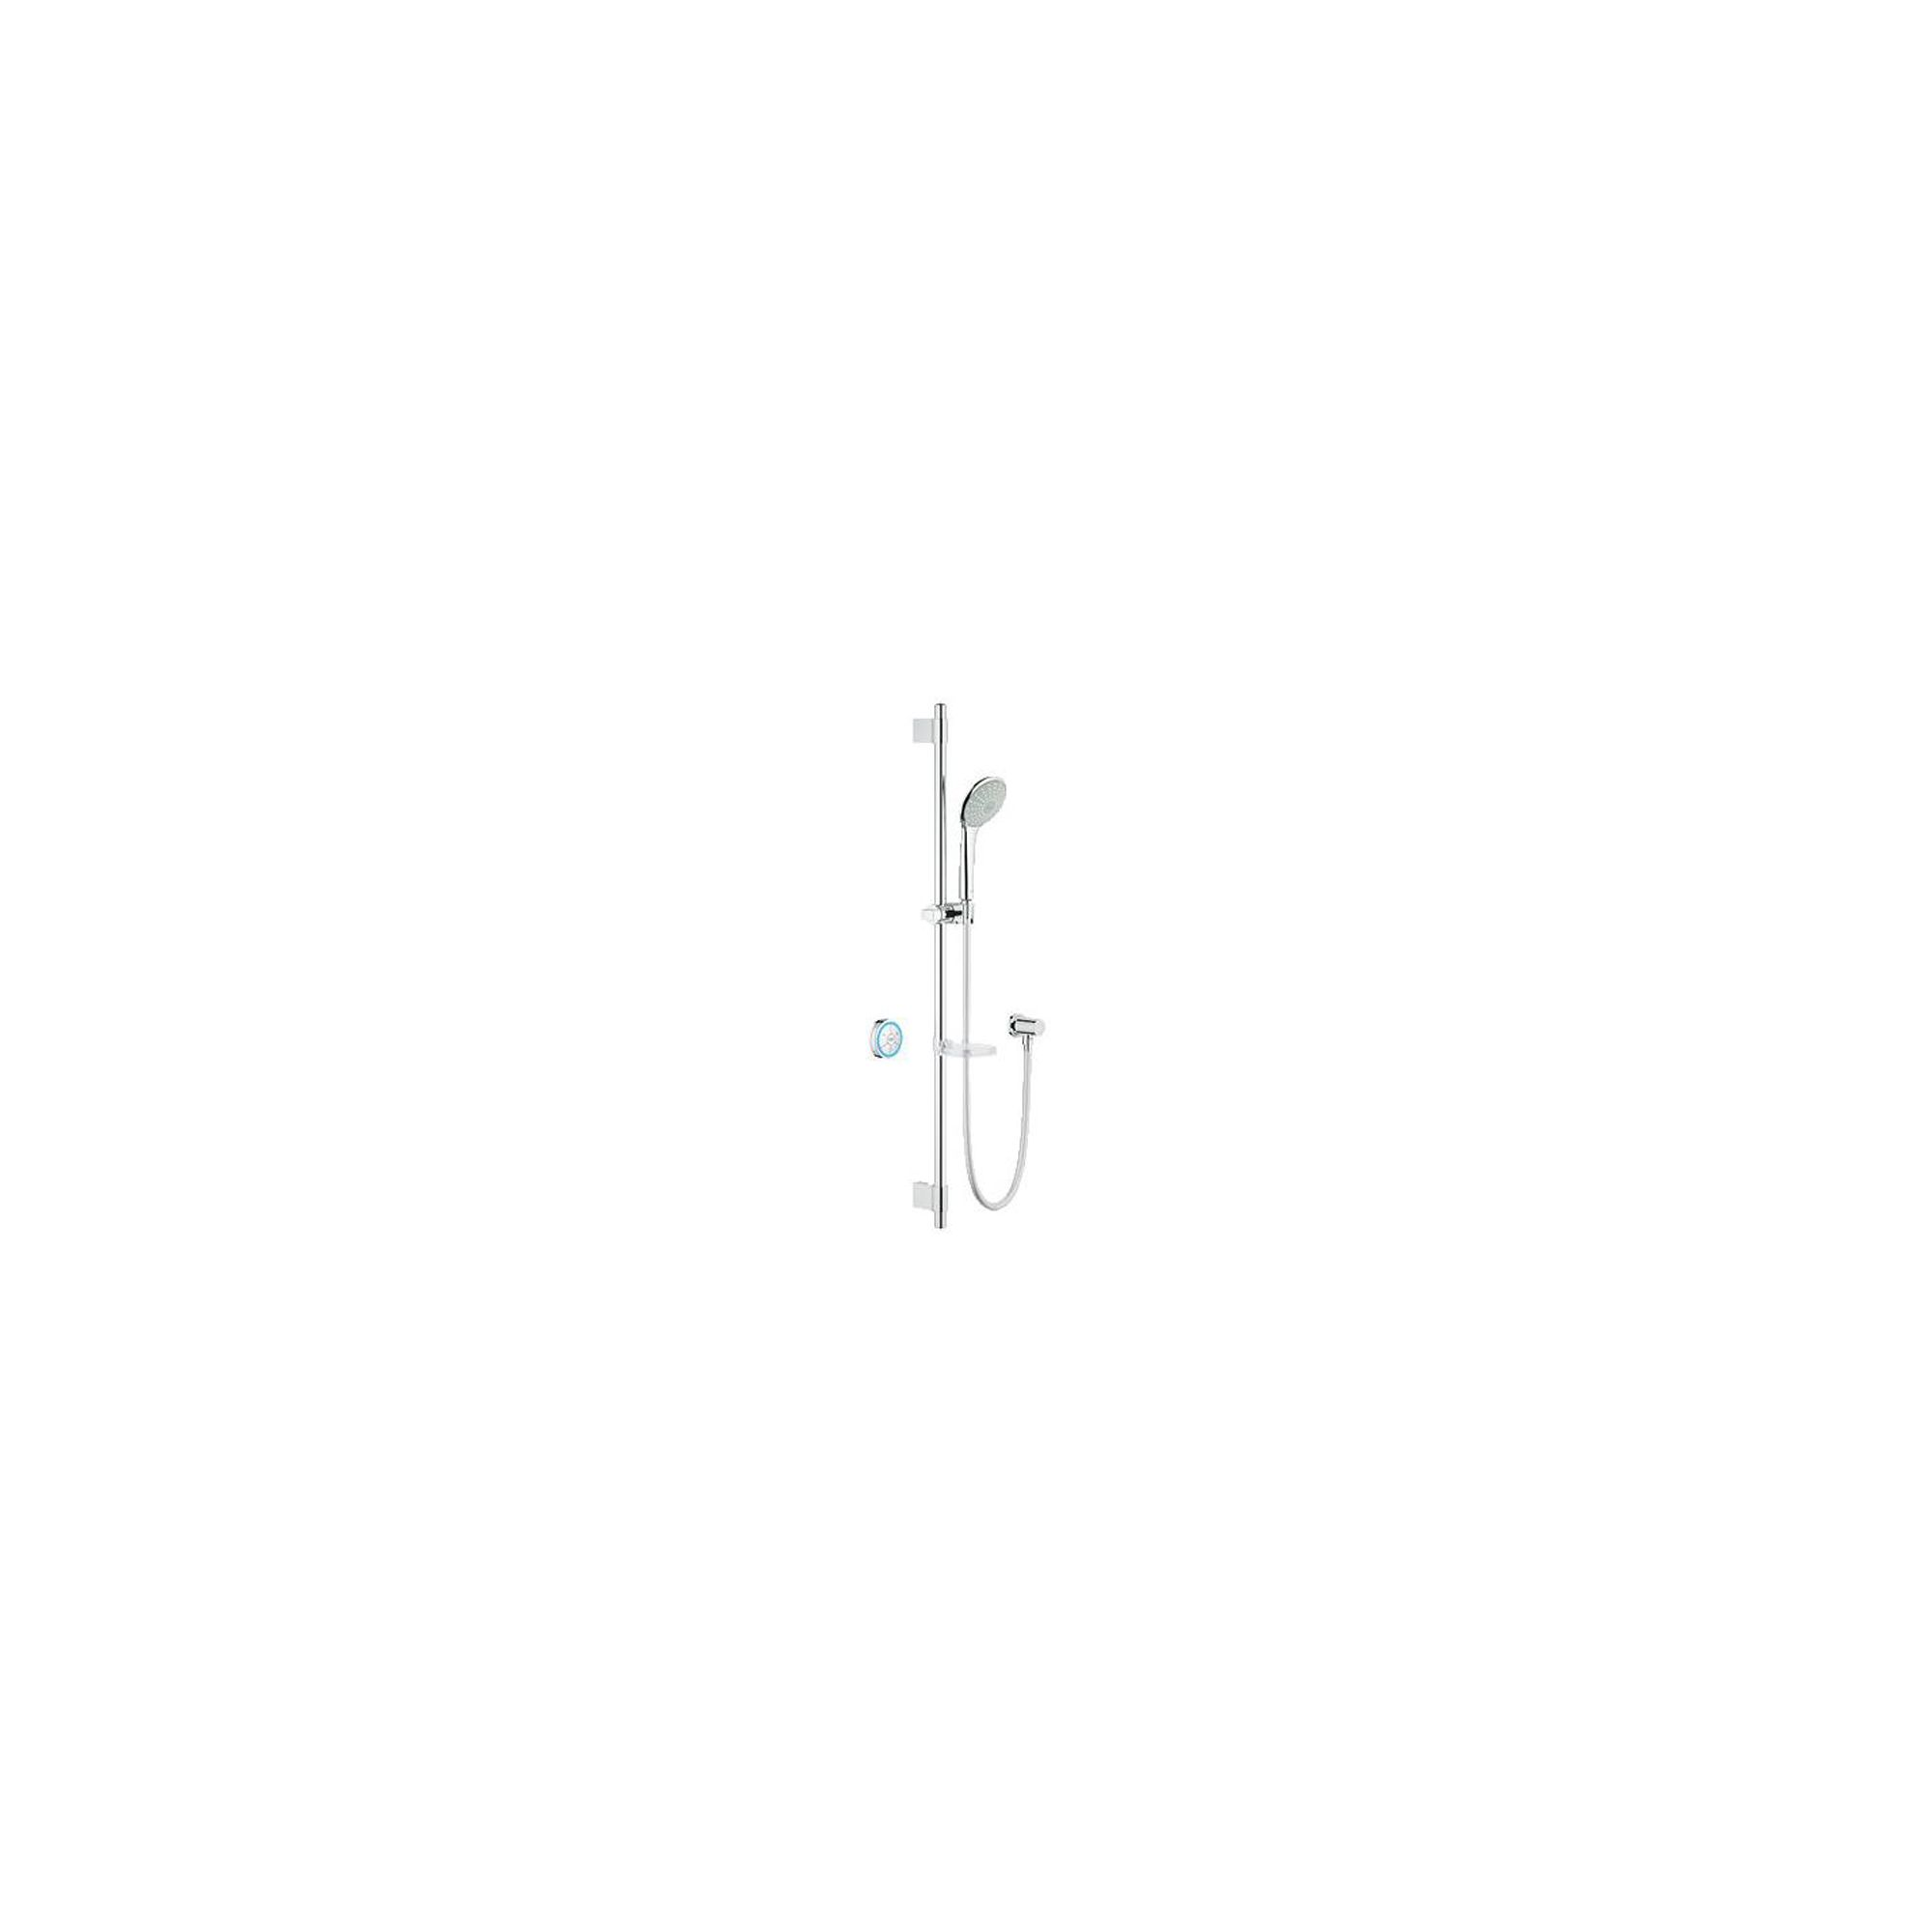 Grohe Euphoria Digital Mixer Shower, Adjustable Kit, Chrome at Tesco Direct